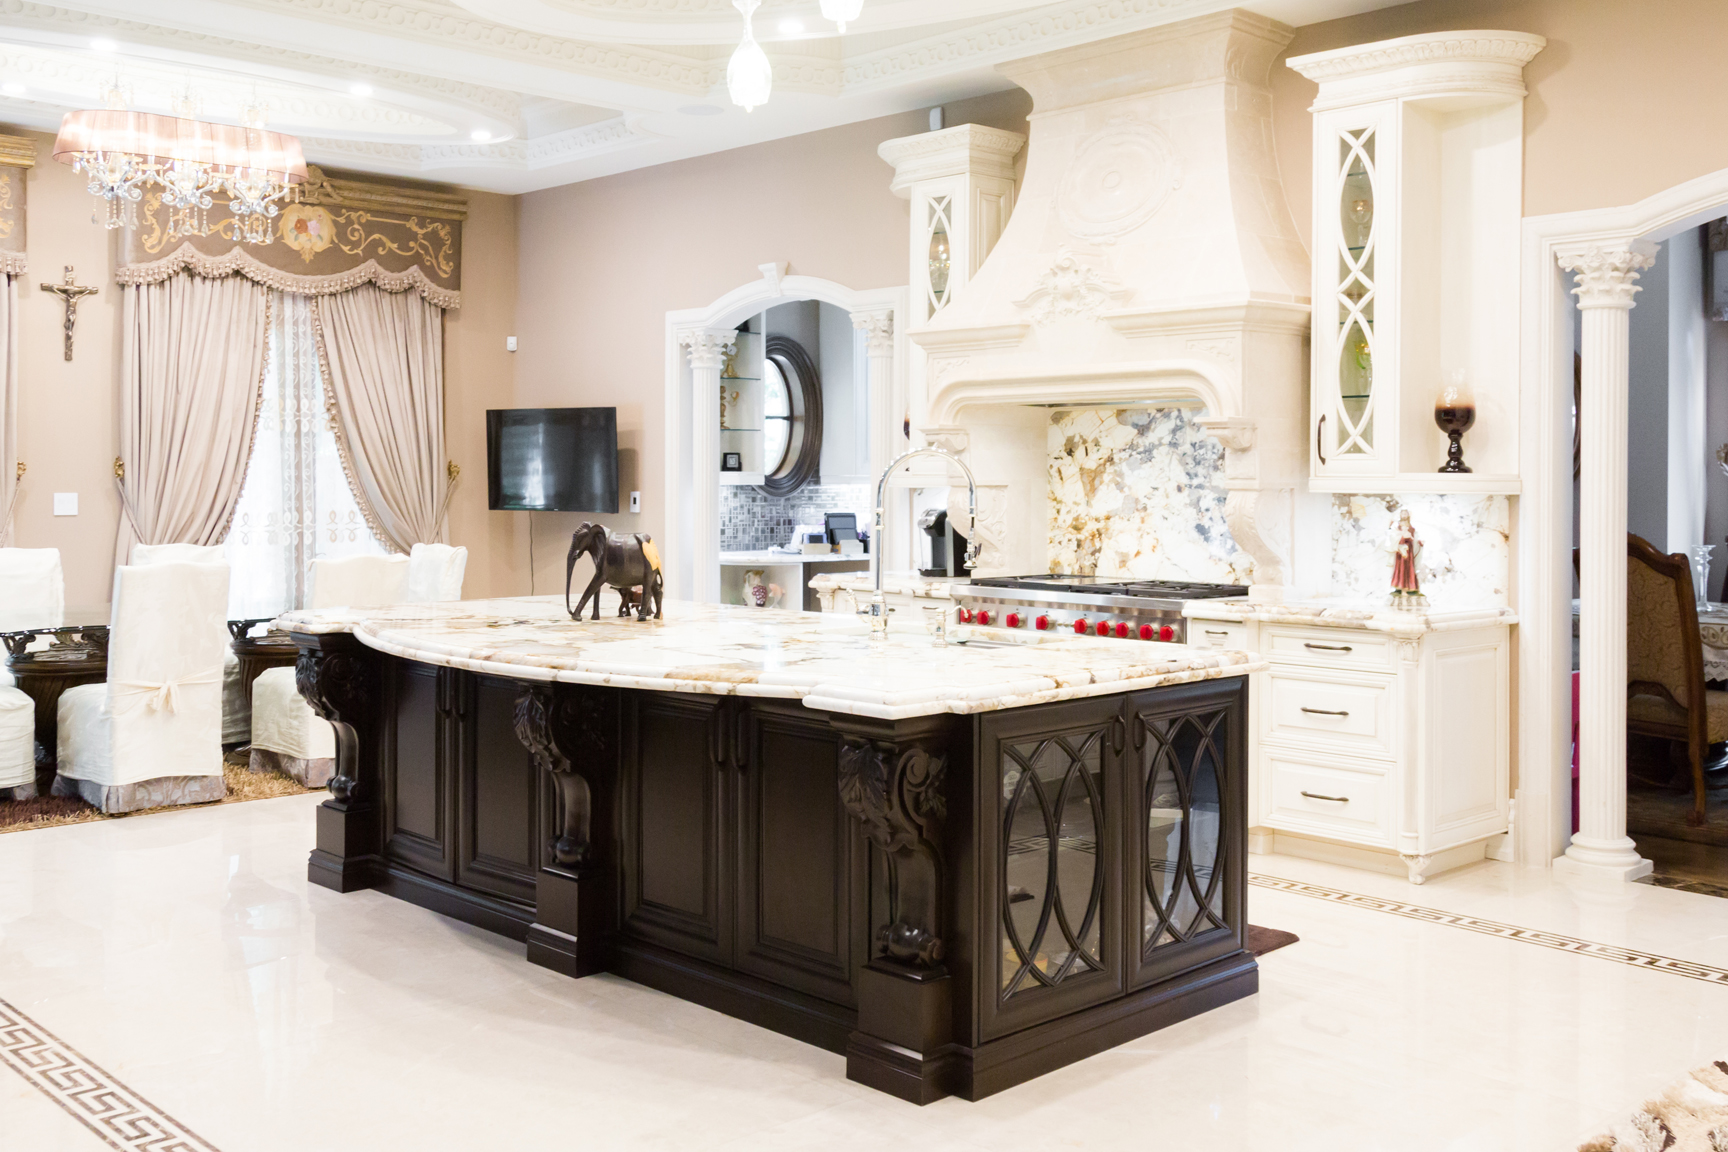 Custom kitchen oakville kitchen cabinets burlington kitchen cabinetry company milton kitchen renovations mississauga kitchen cabinet refacing